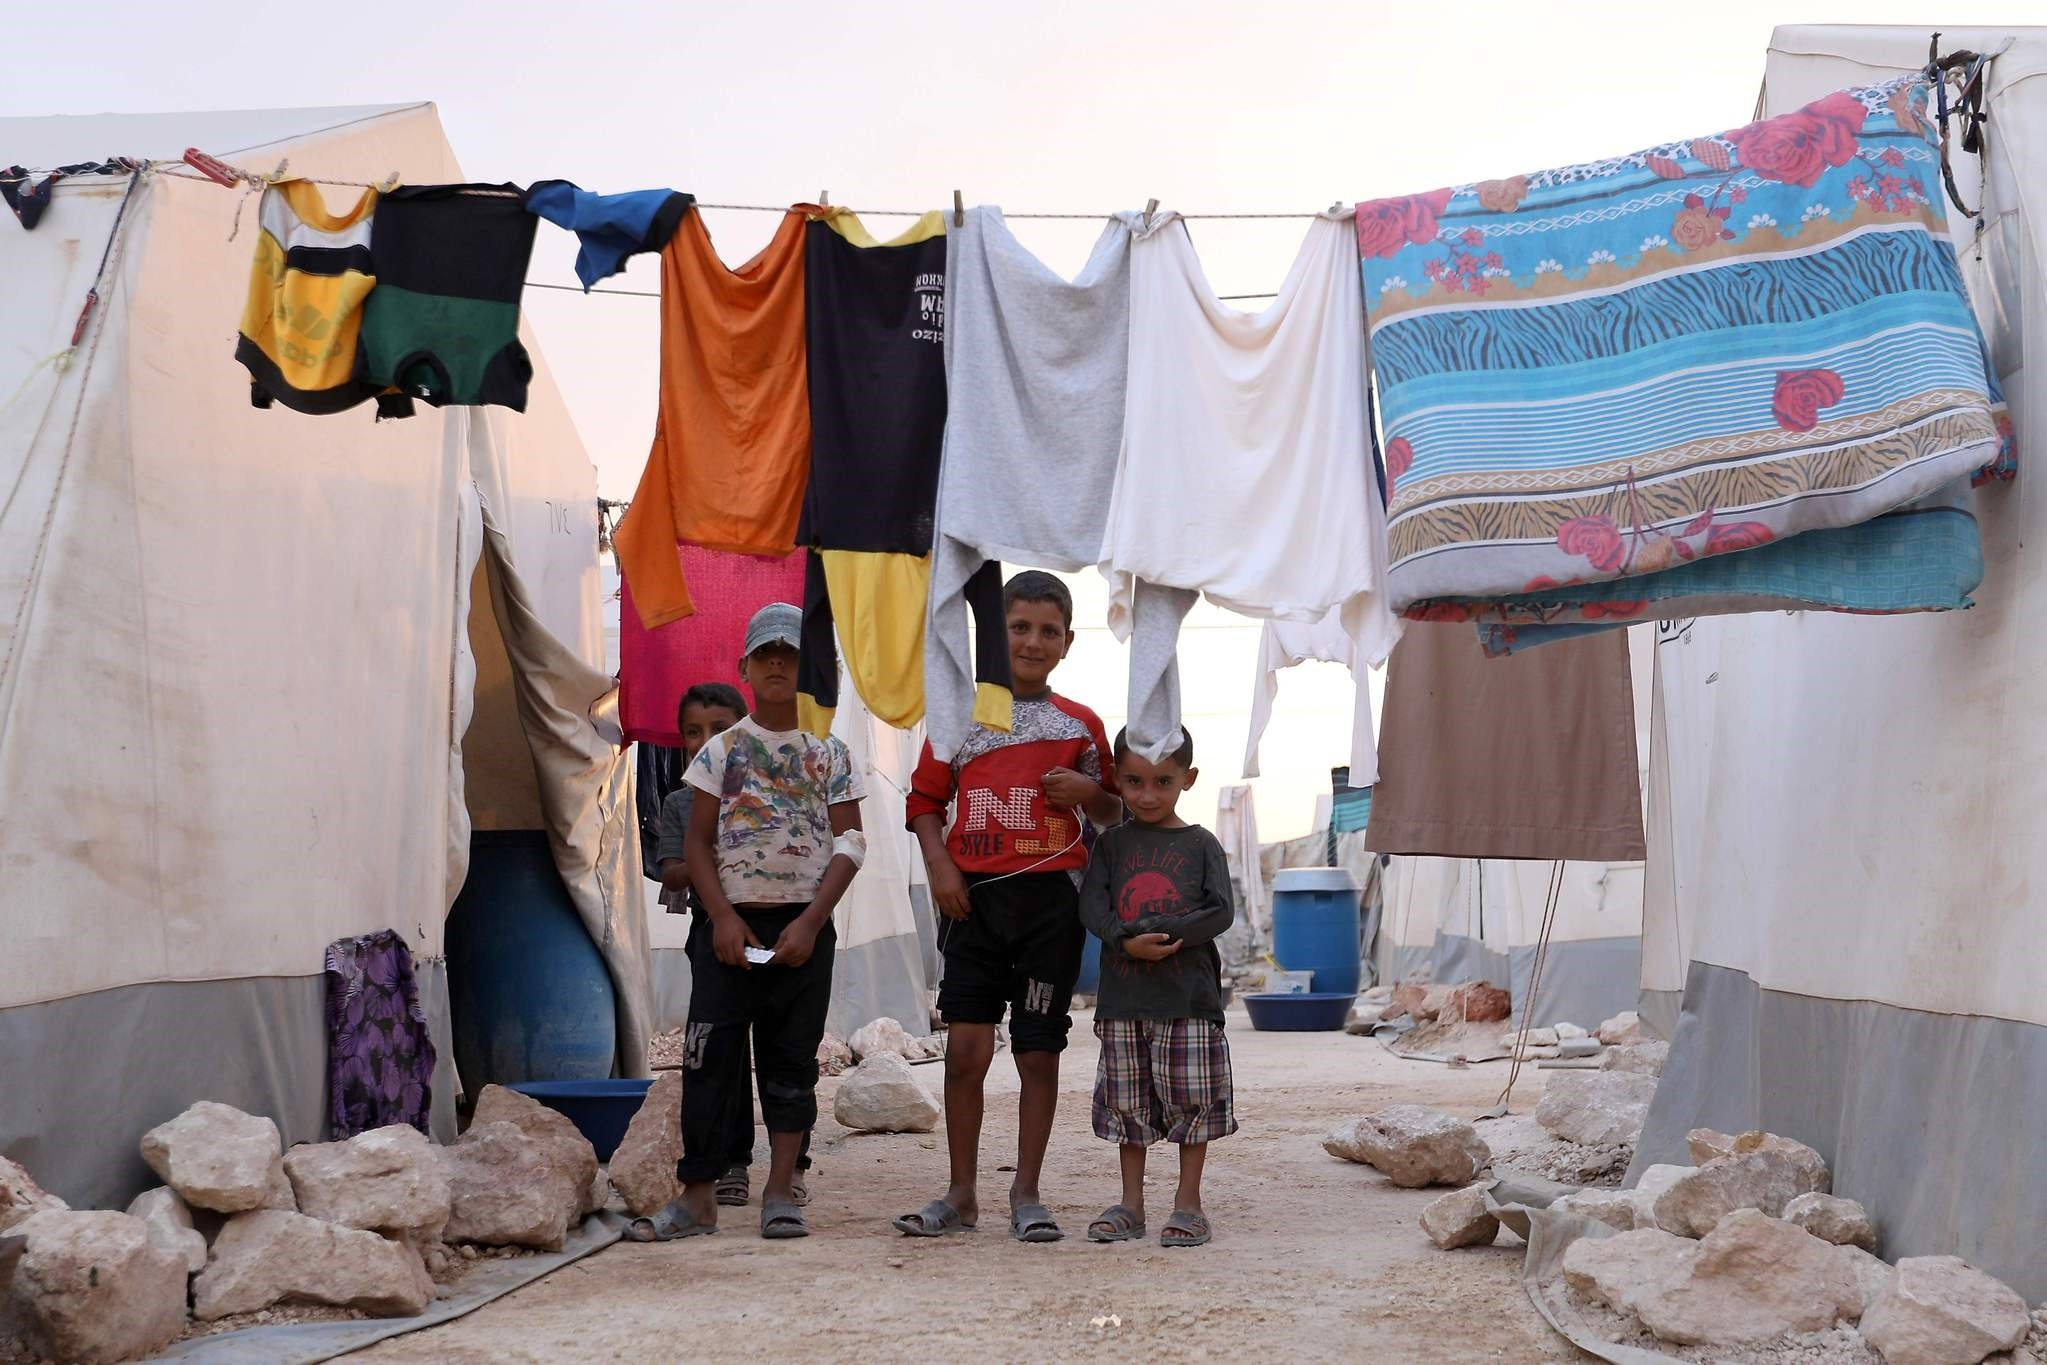 Displaced Syrian children pose for a photograph in a refugee camp near the Turkish-Syrian border, Sept. 13.